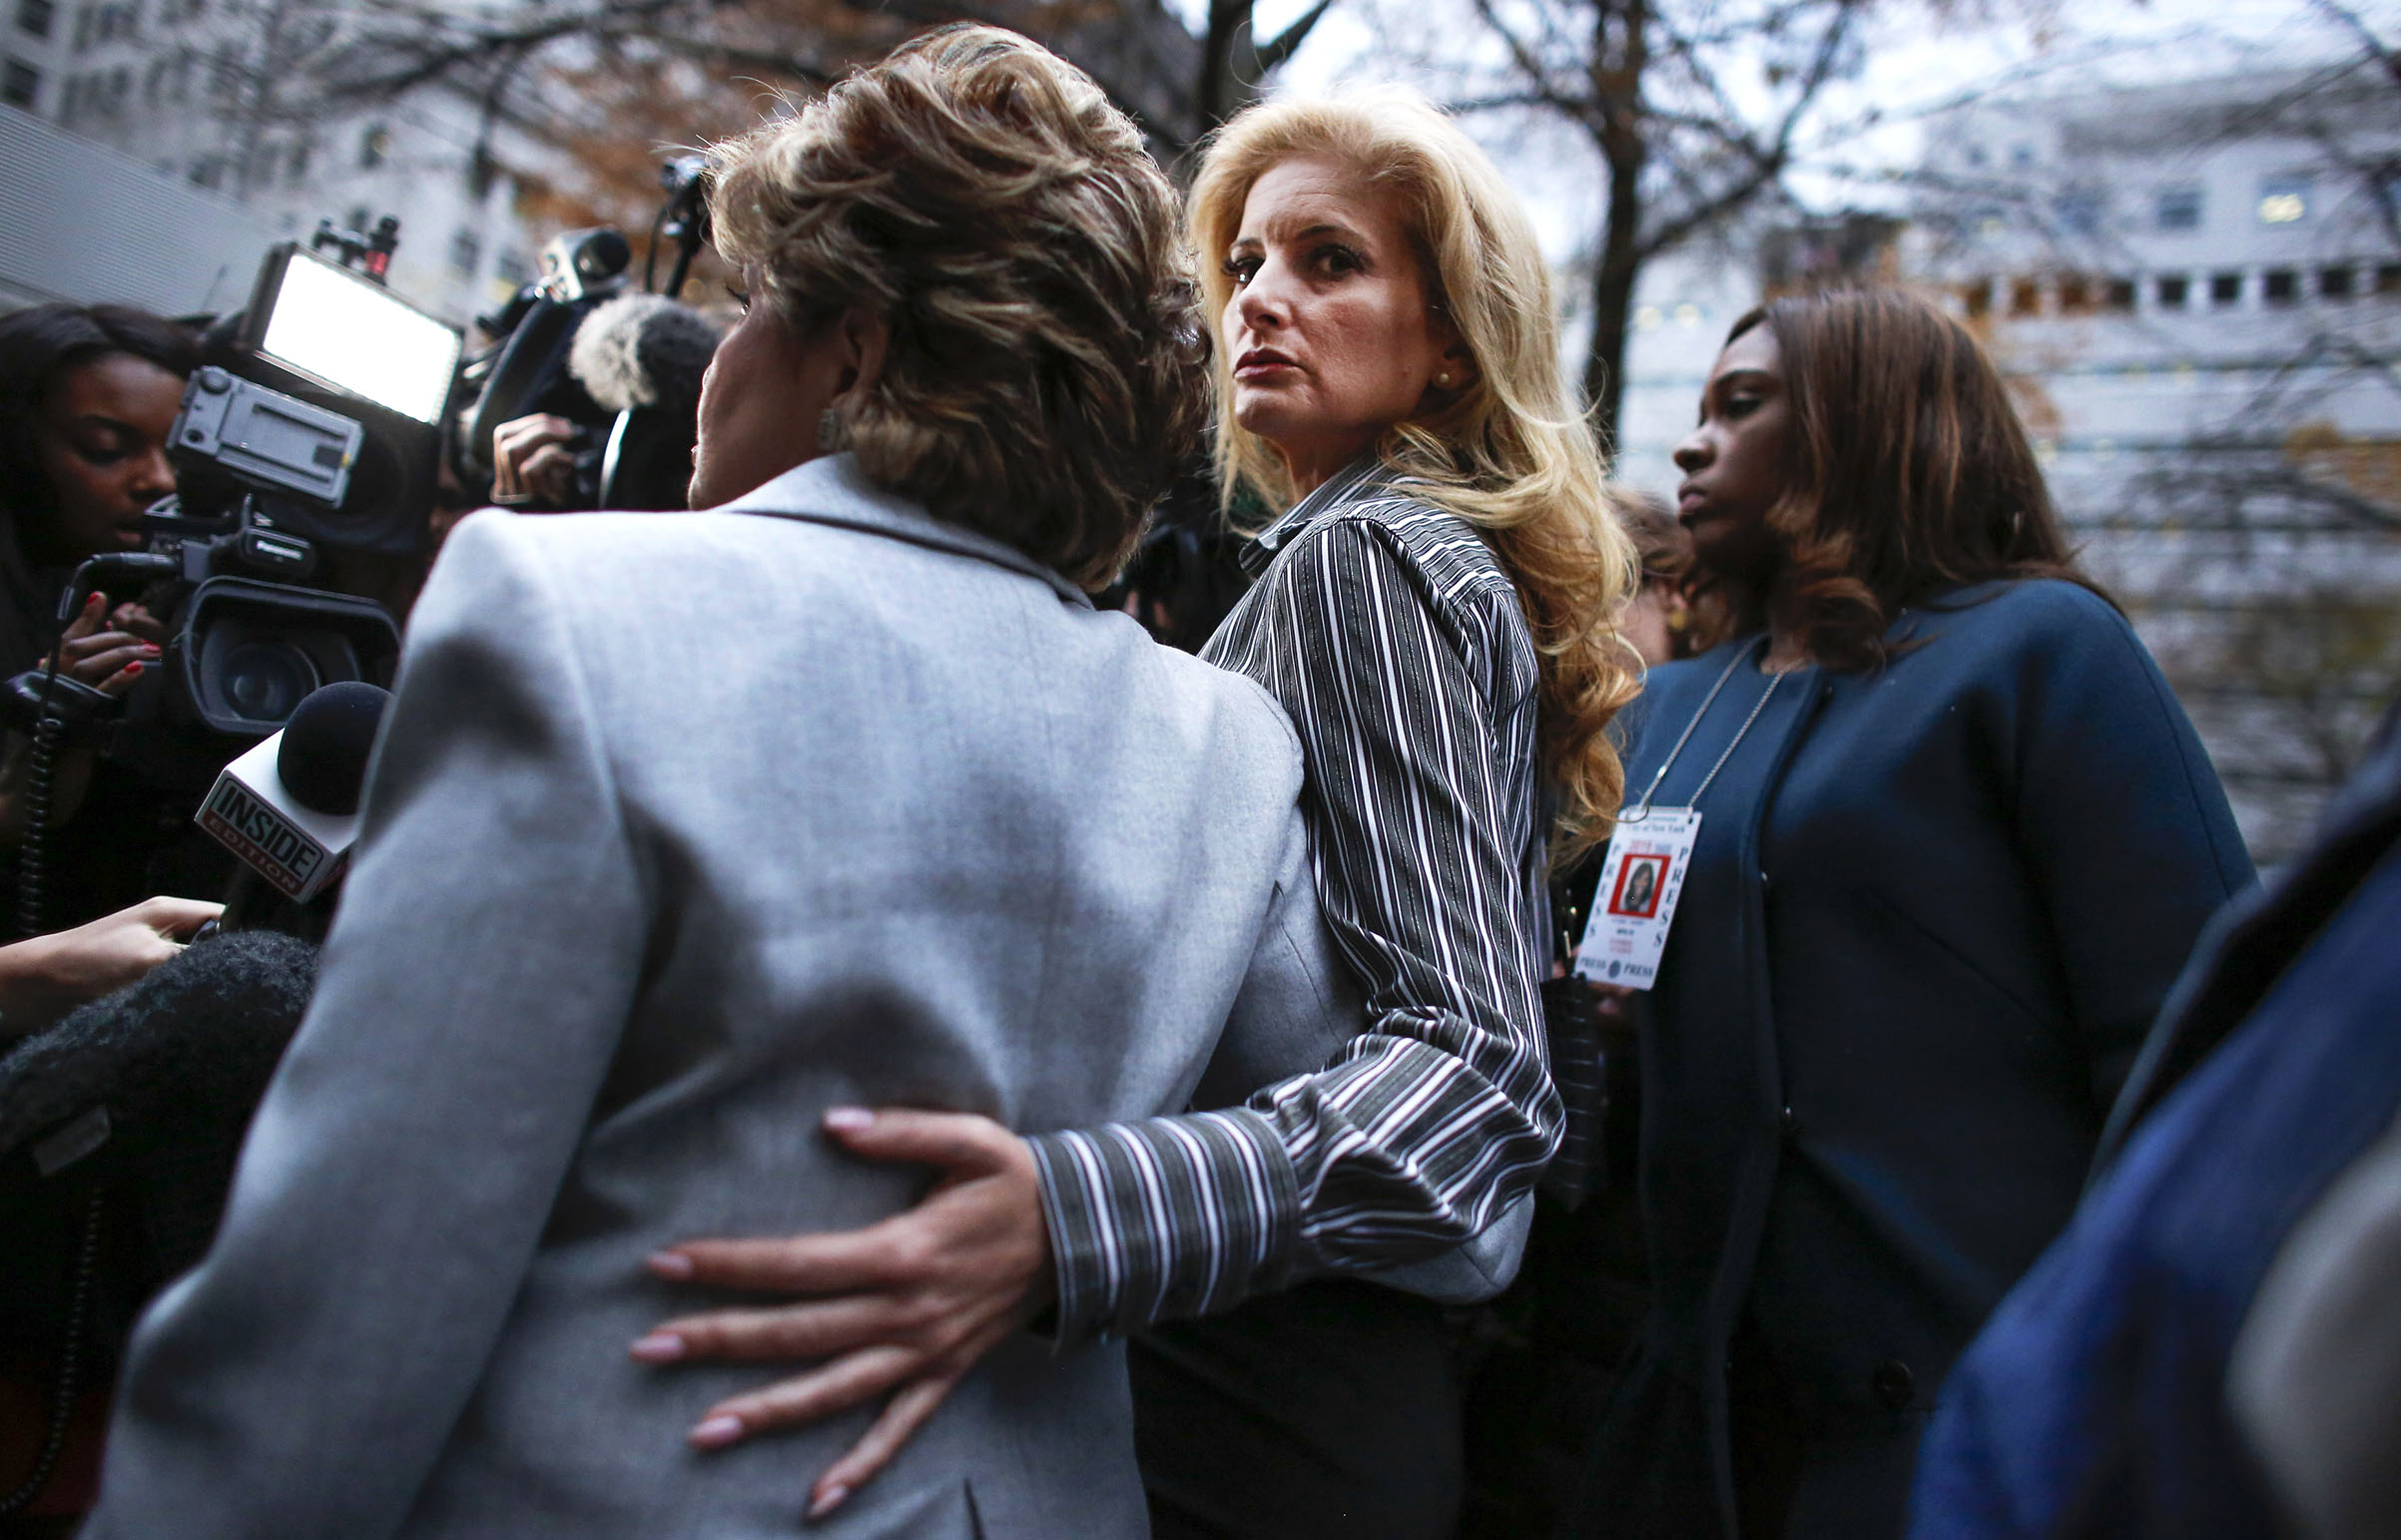 Summer Zervos a former contestant on  The Apprentice  looks at the camera as she embraces lawyer Gloria Allred after they leave the New York County Criminal Court on Dec. 5, 2017.